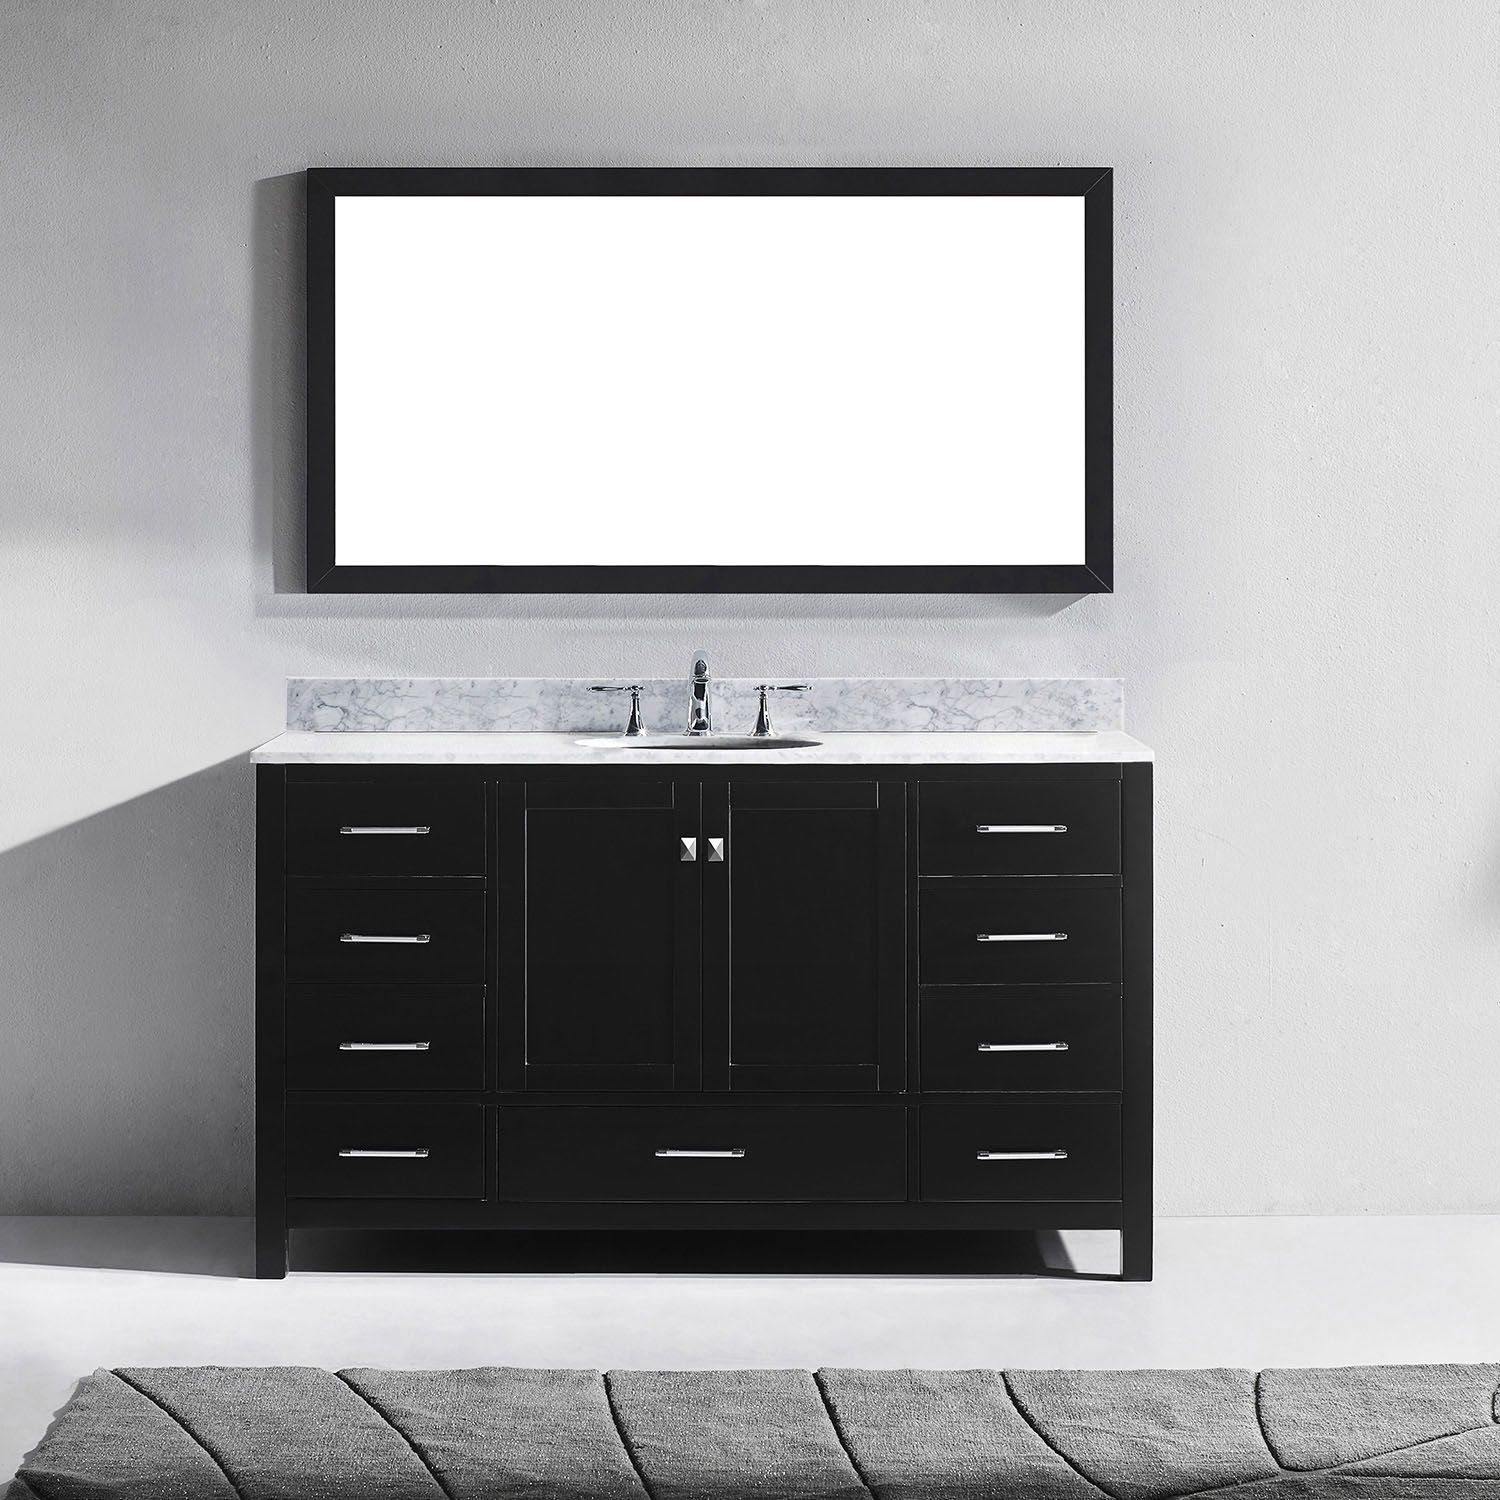 Virtu USA Caroline Avenue 60 inch White Marble Single Bathroom